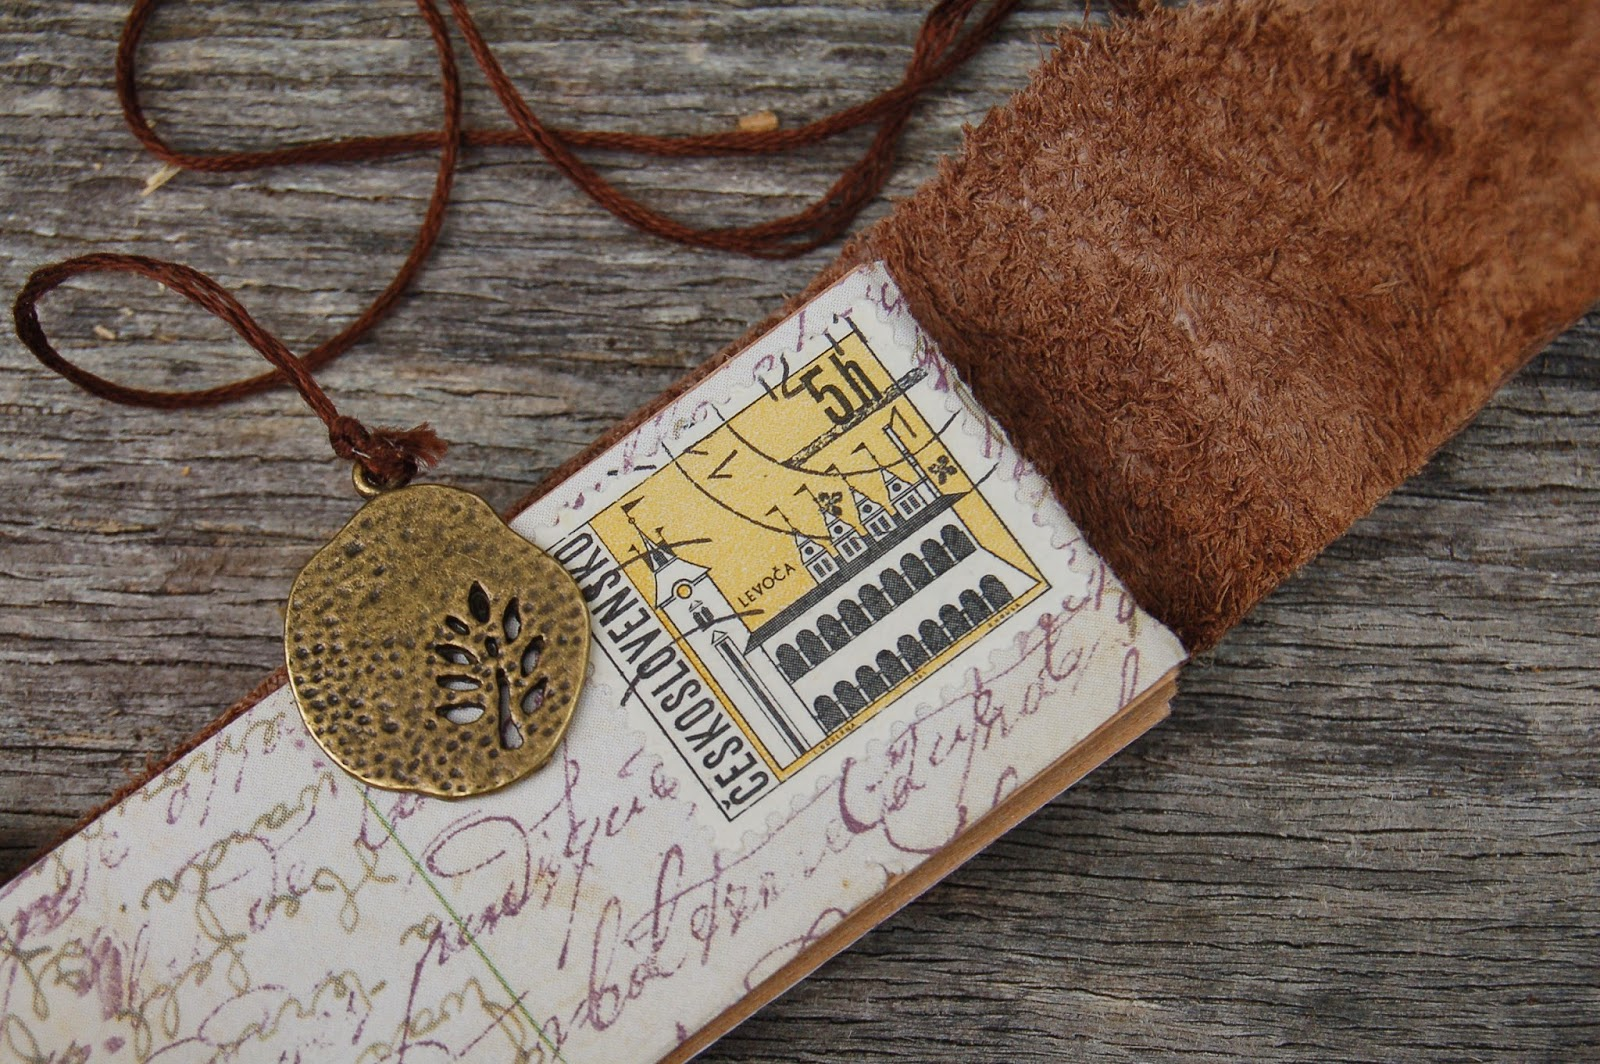 https://www.etsy.com/listing/206165118/the-long-letter-travelers-pocket-journal?ref=listing-shop-header-2